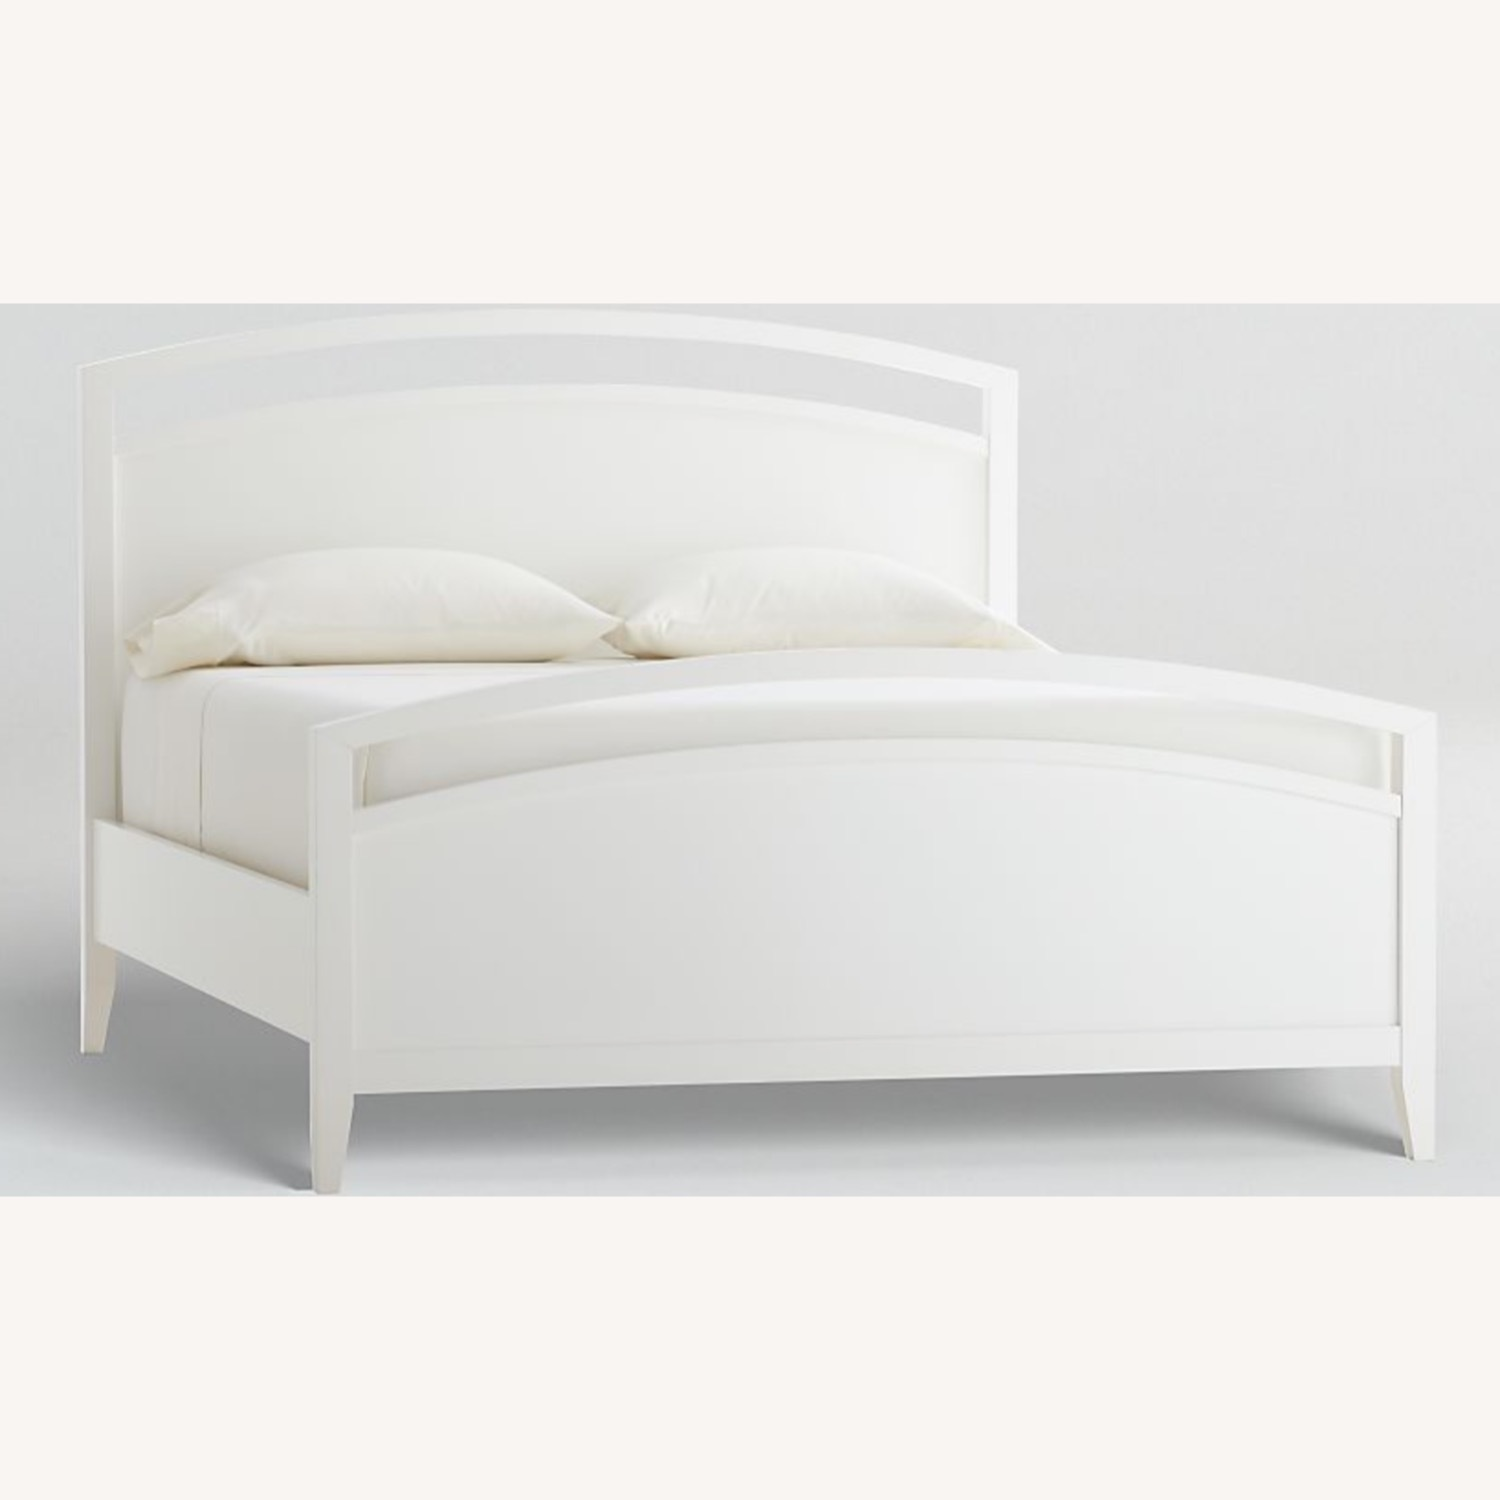 Crate & Barrel Arch White Queen Wooden Bed - image-1